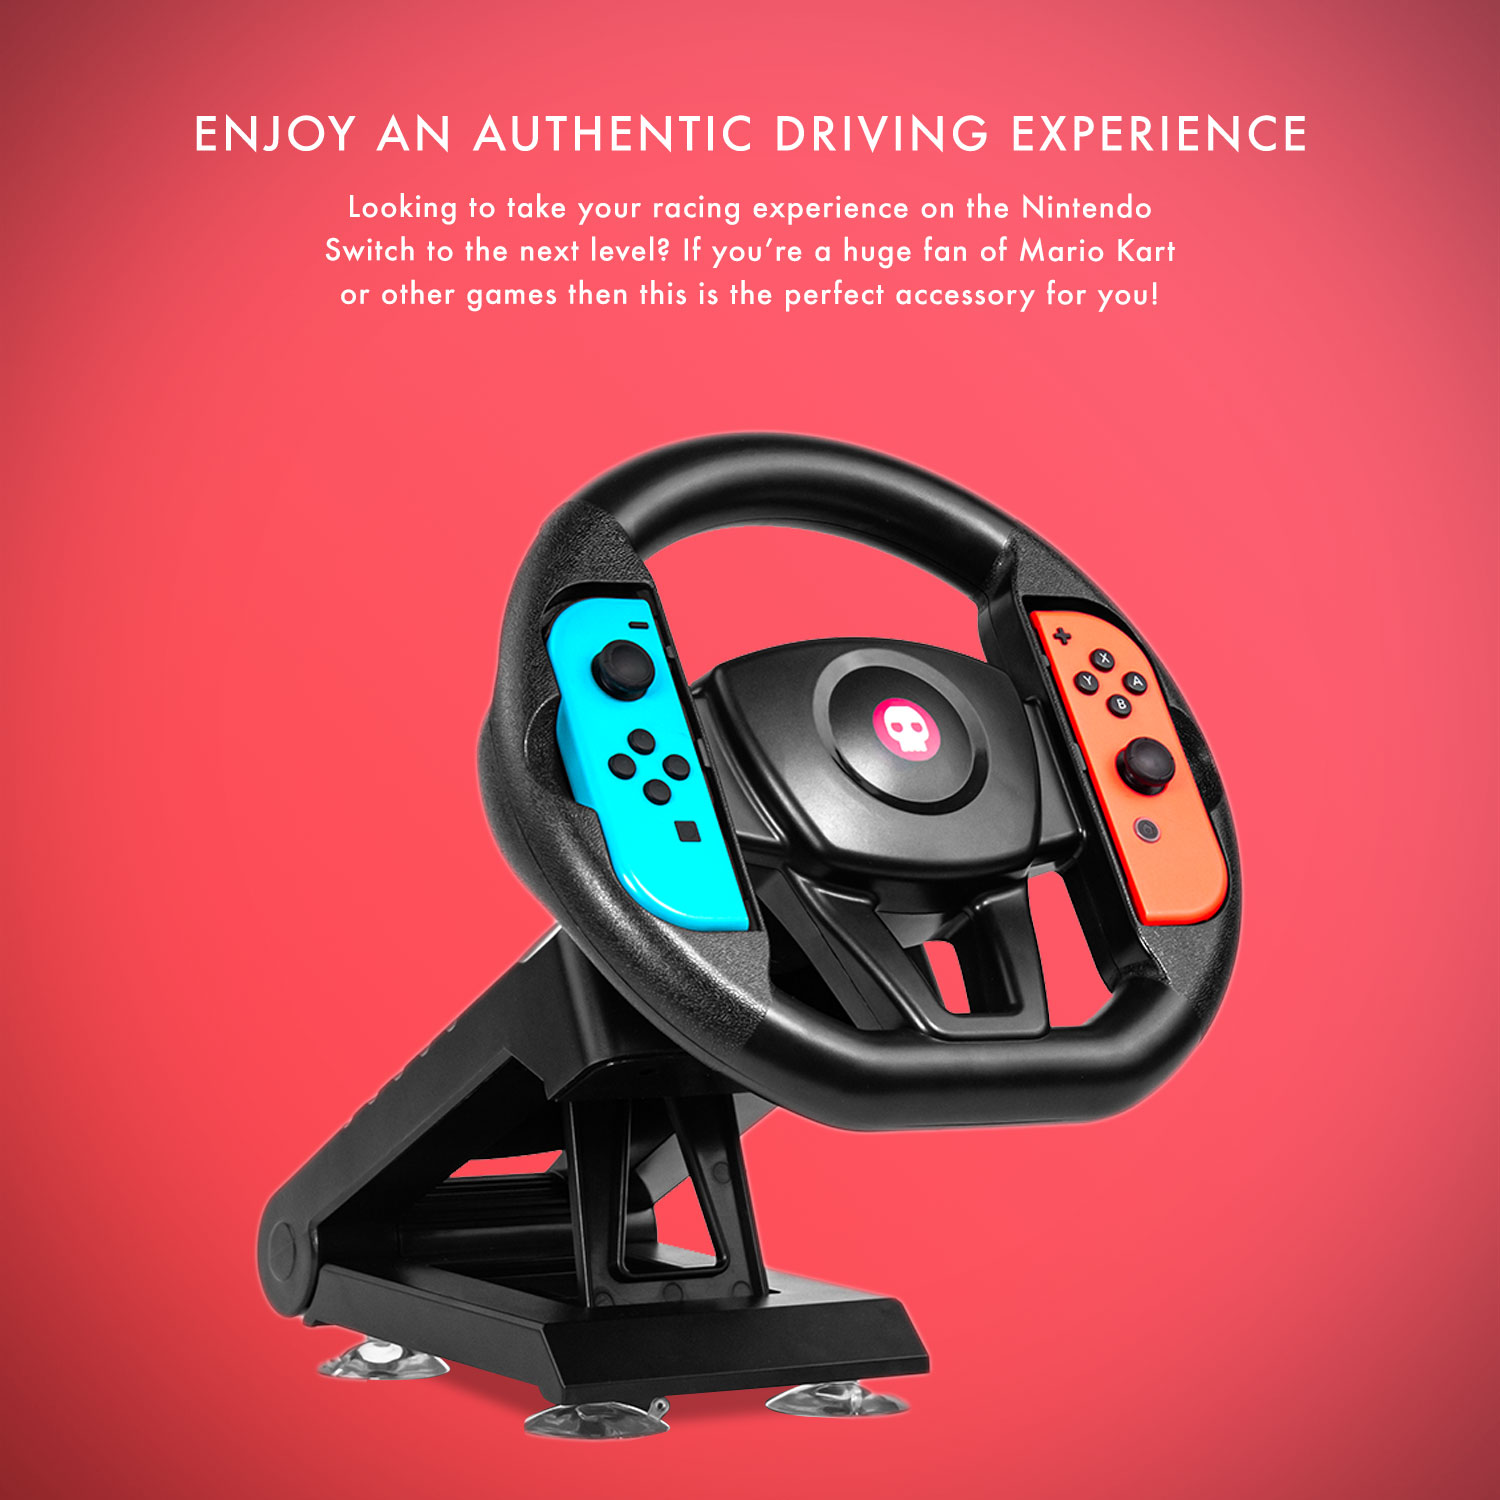 Numskull Nintendo Switch Joy Con Steering Wheel Table Attachment